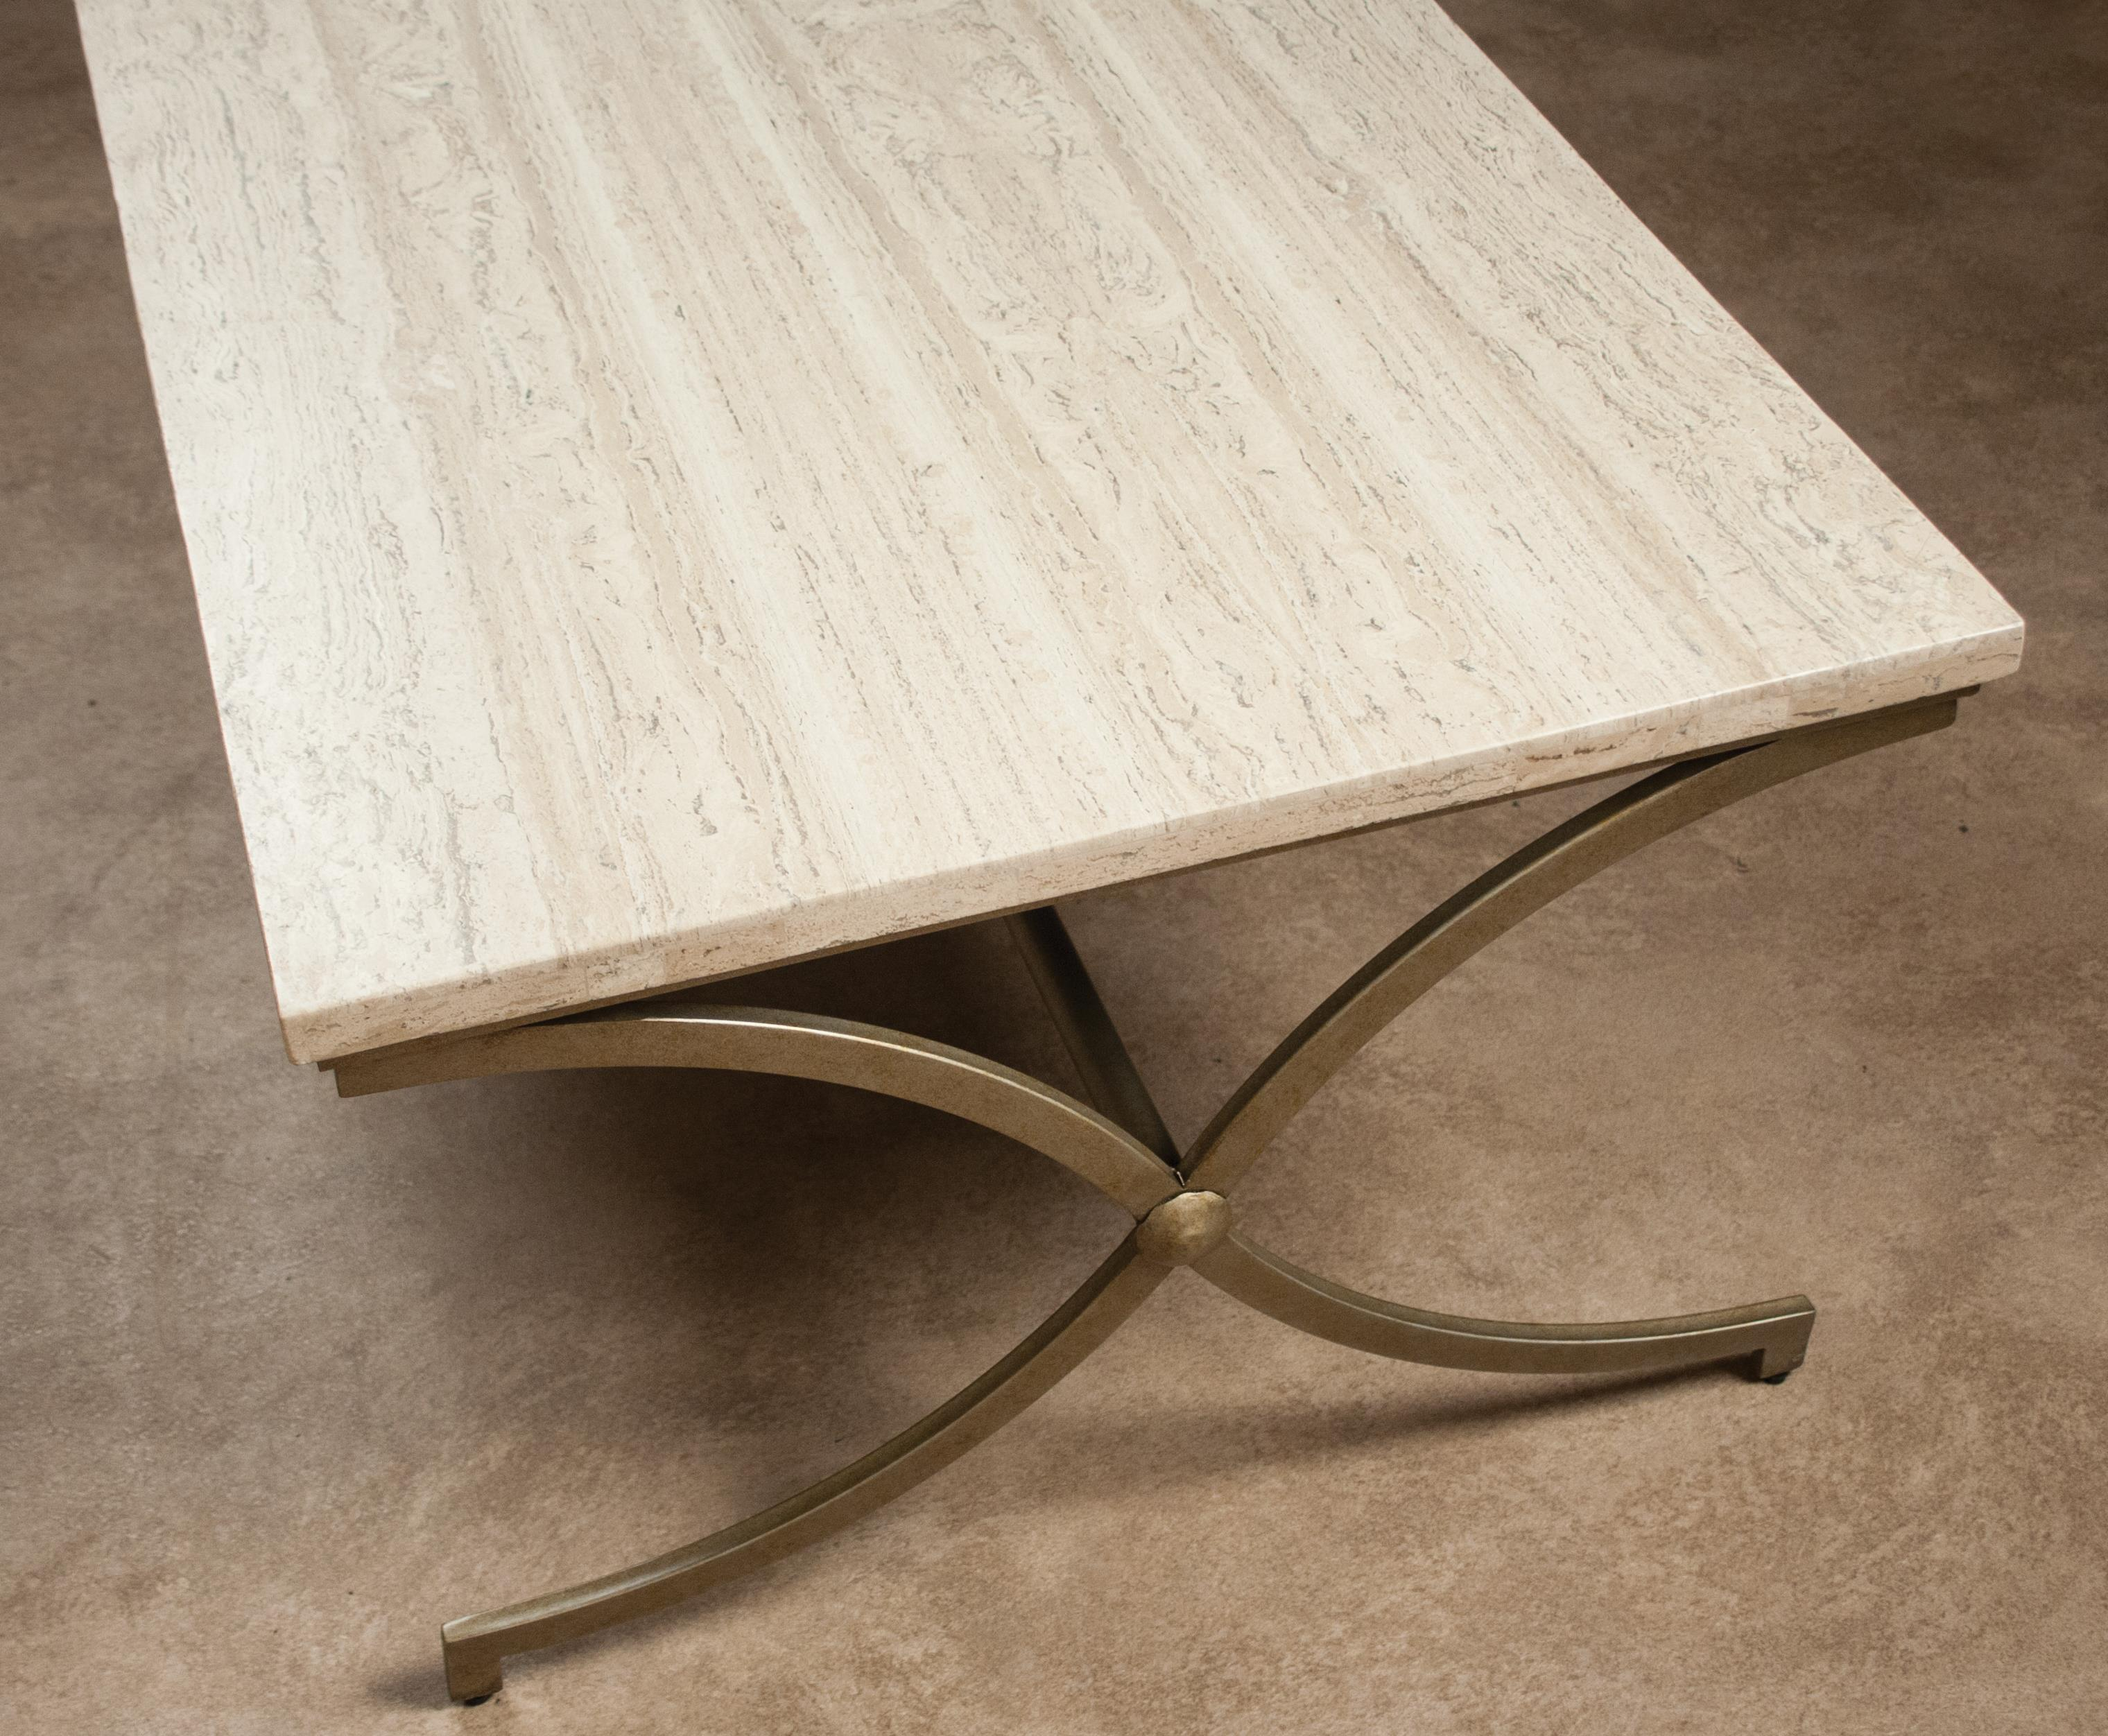 Travertine coffee table by riverside furniture wolf and gardiner travertine coffee table geotapseo Image collections